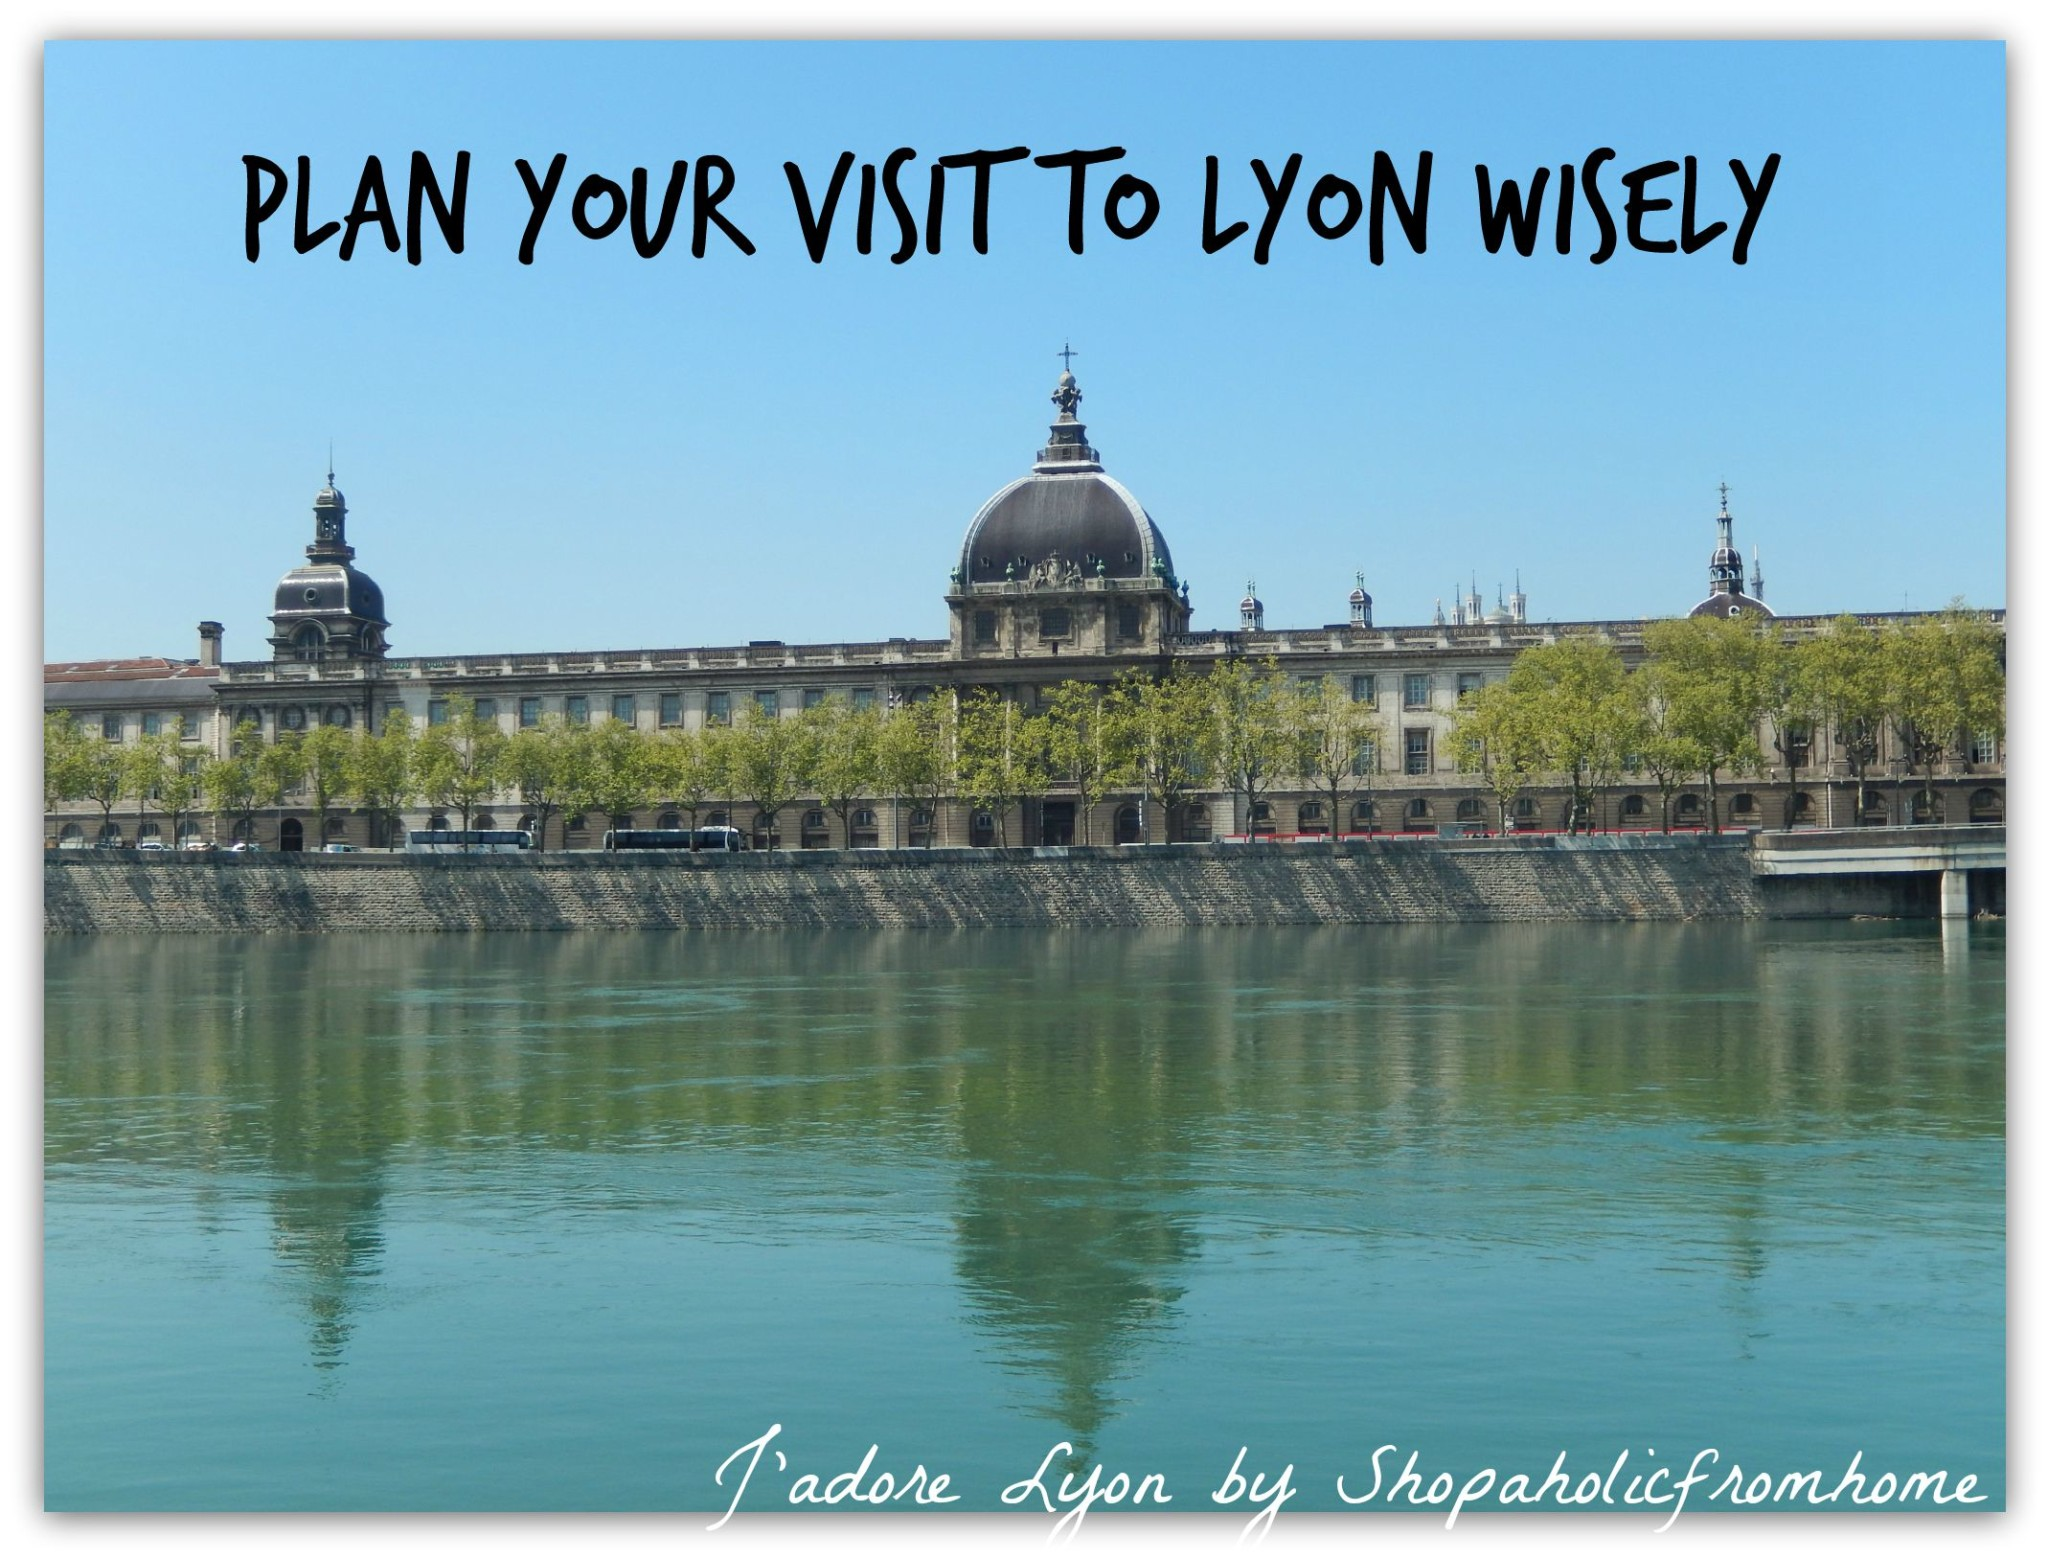 Plan your Visit to Lyon wisely